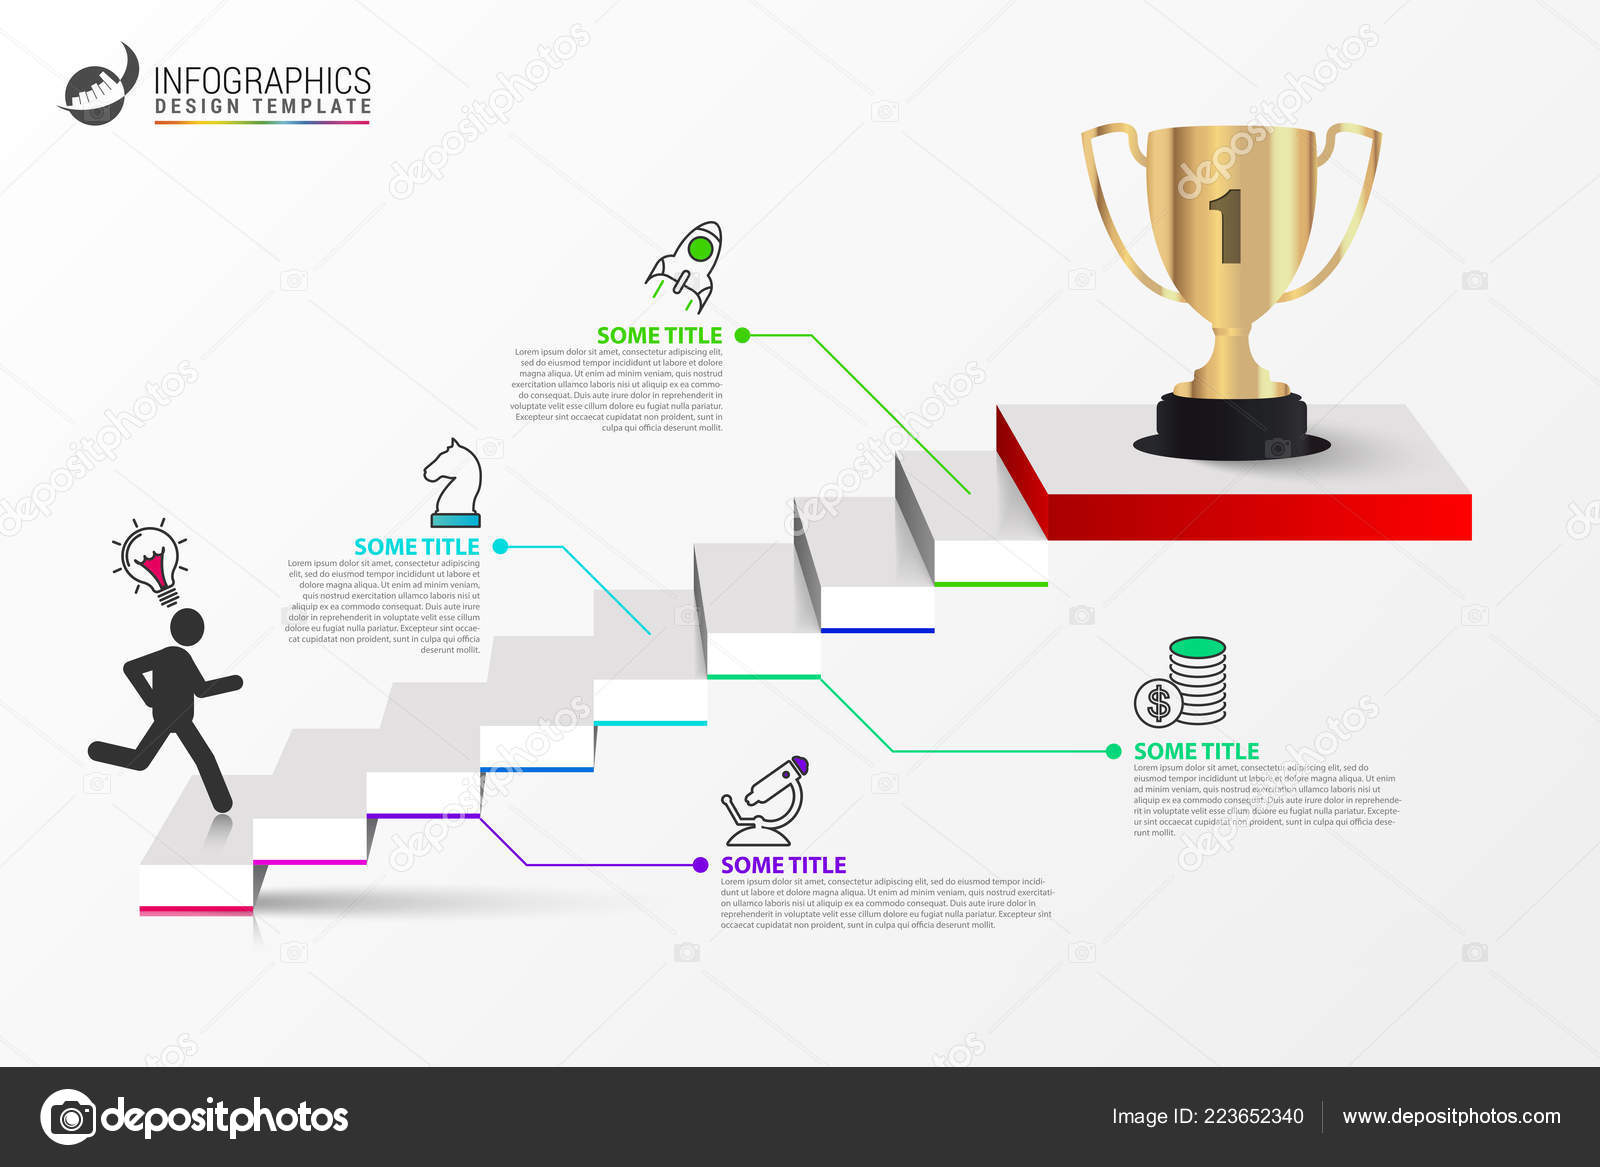 infographic design template staircase concept steps can used